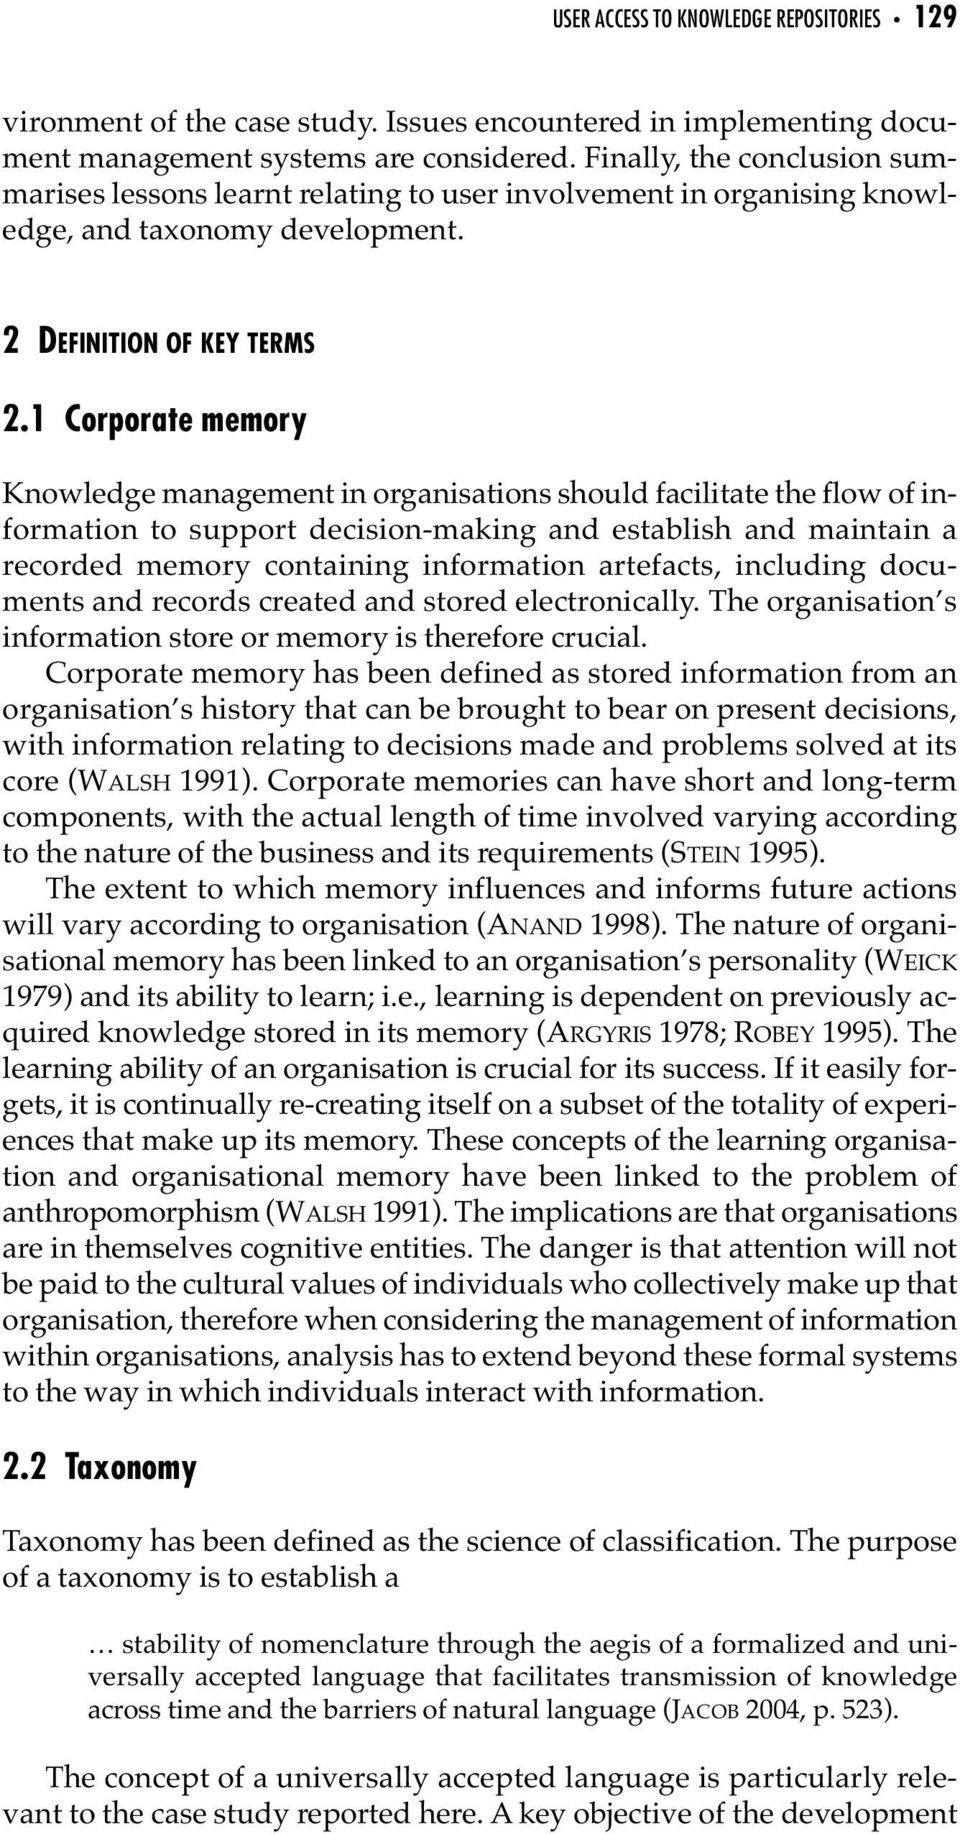 1 Corporate memory Knowledge management in organisations should facilitate the flow of information to support decision-making and establish and maintain a recorded memory containing information